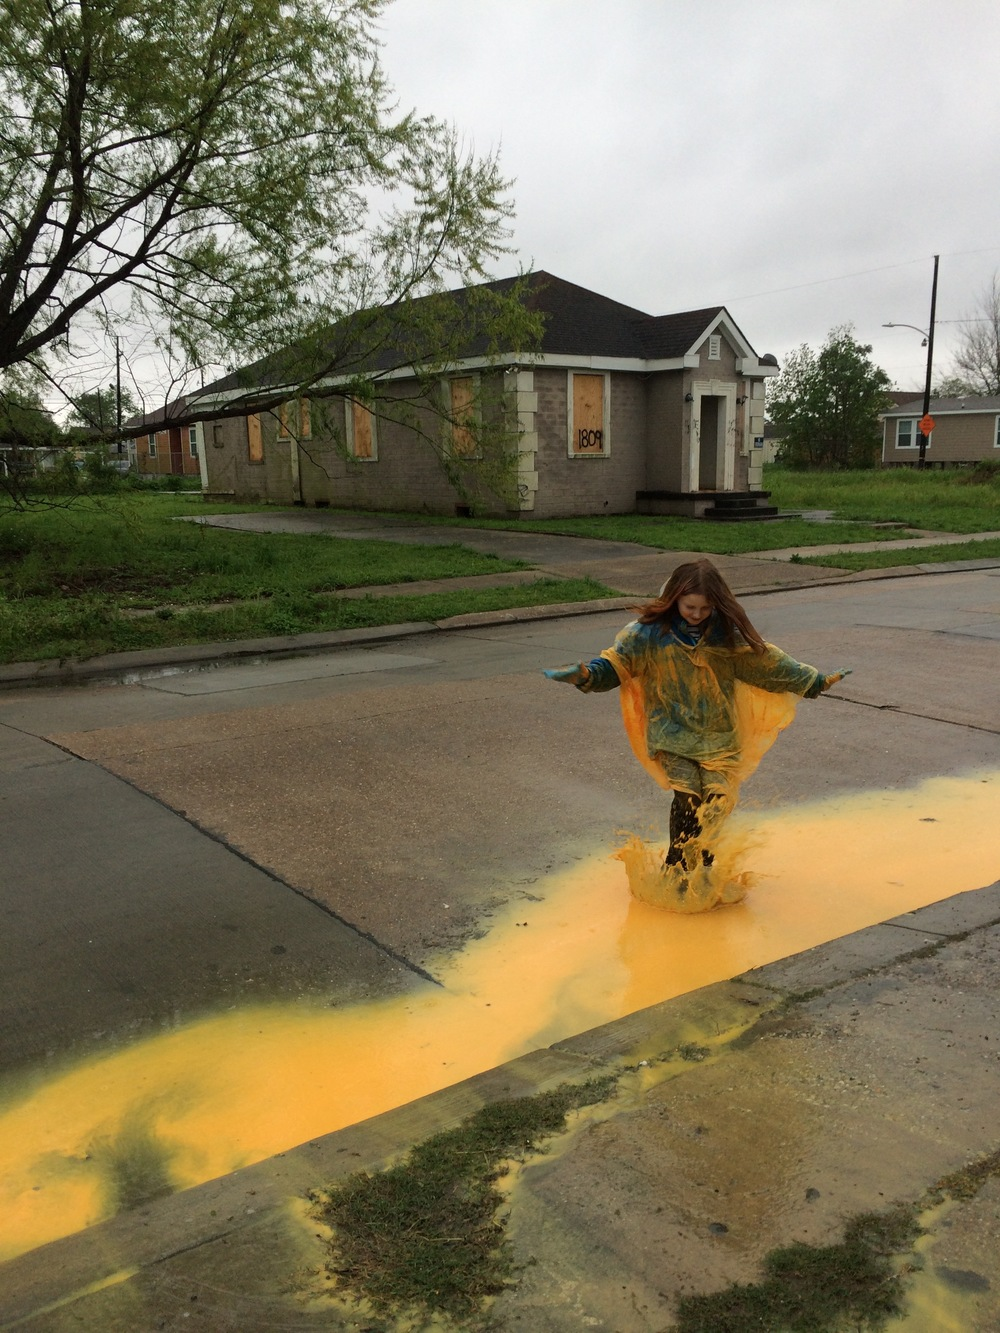 Charlotte, a volunteer from Chicago Sinai Congregation, jumps in a puddle made from the run-off of the farmhouse painting she and her crew did today.